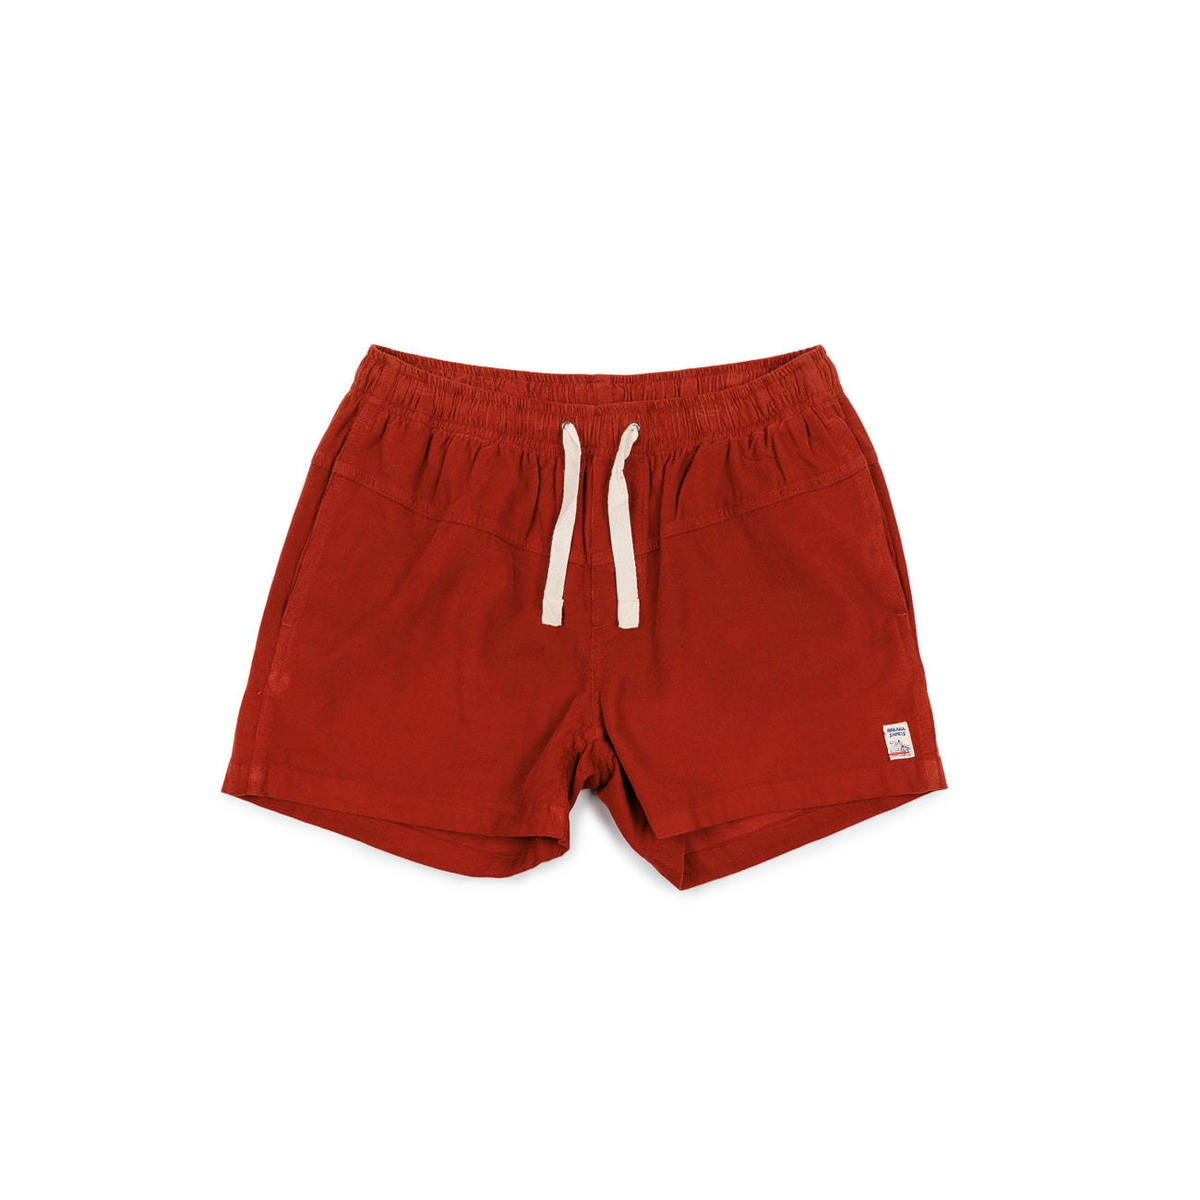 [M.Nii] CORDUROY DROWNER TRUNK 'RED'